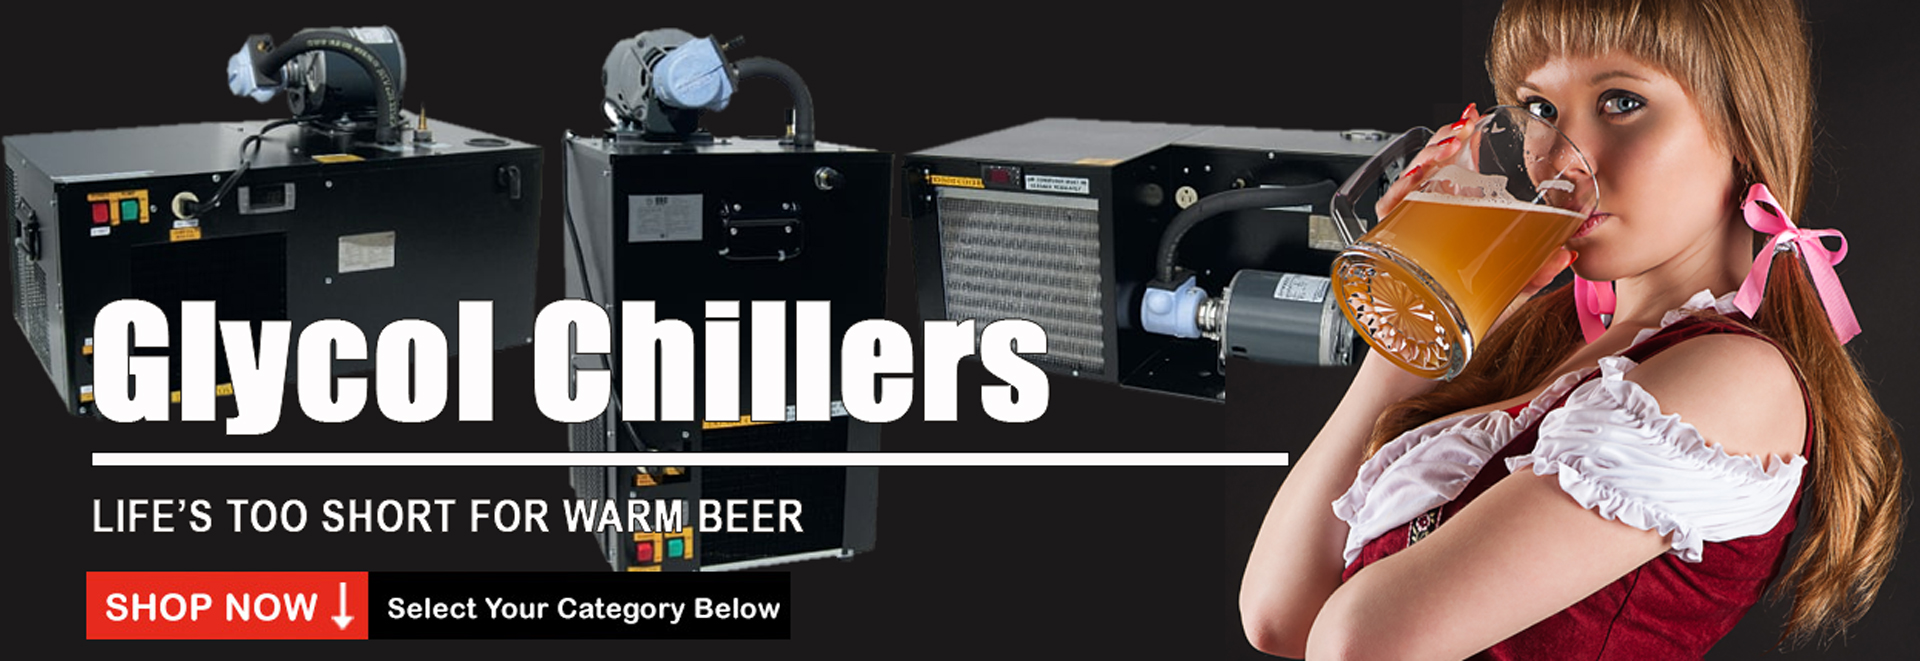 Glycol Chillers - Keep'em Cold!